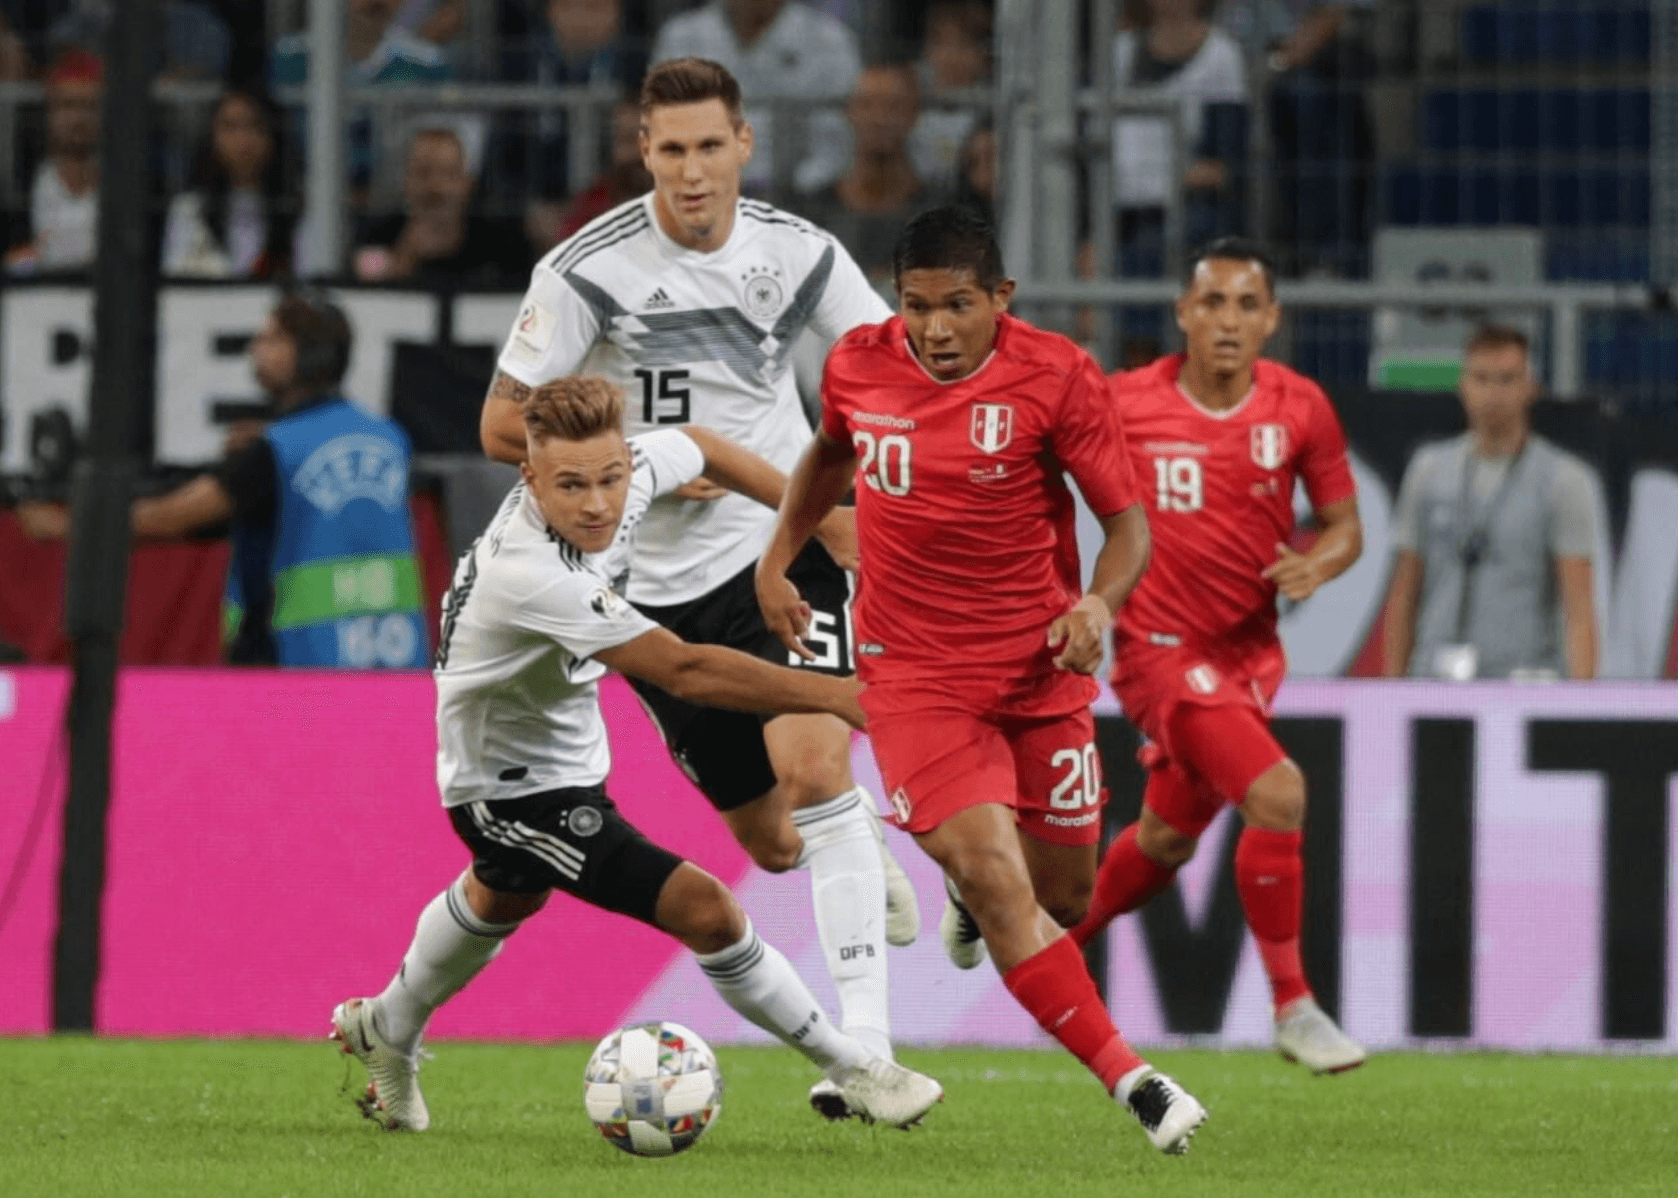 Peru loses 2-1 to Germany in road friendly